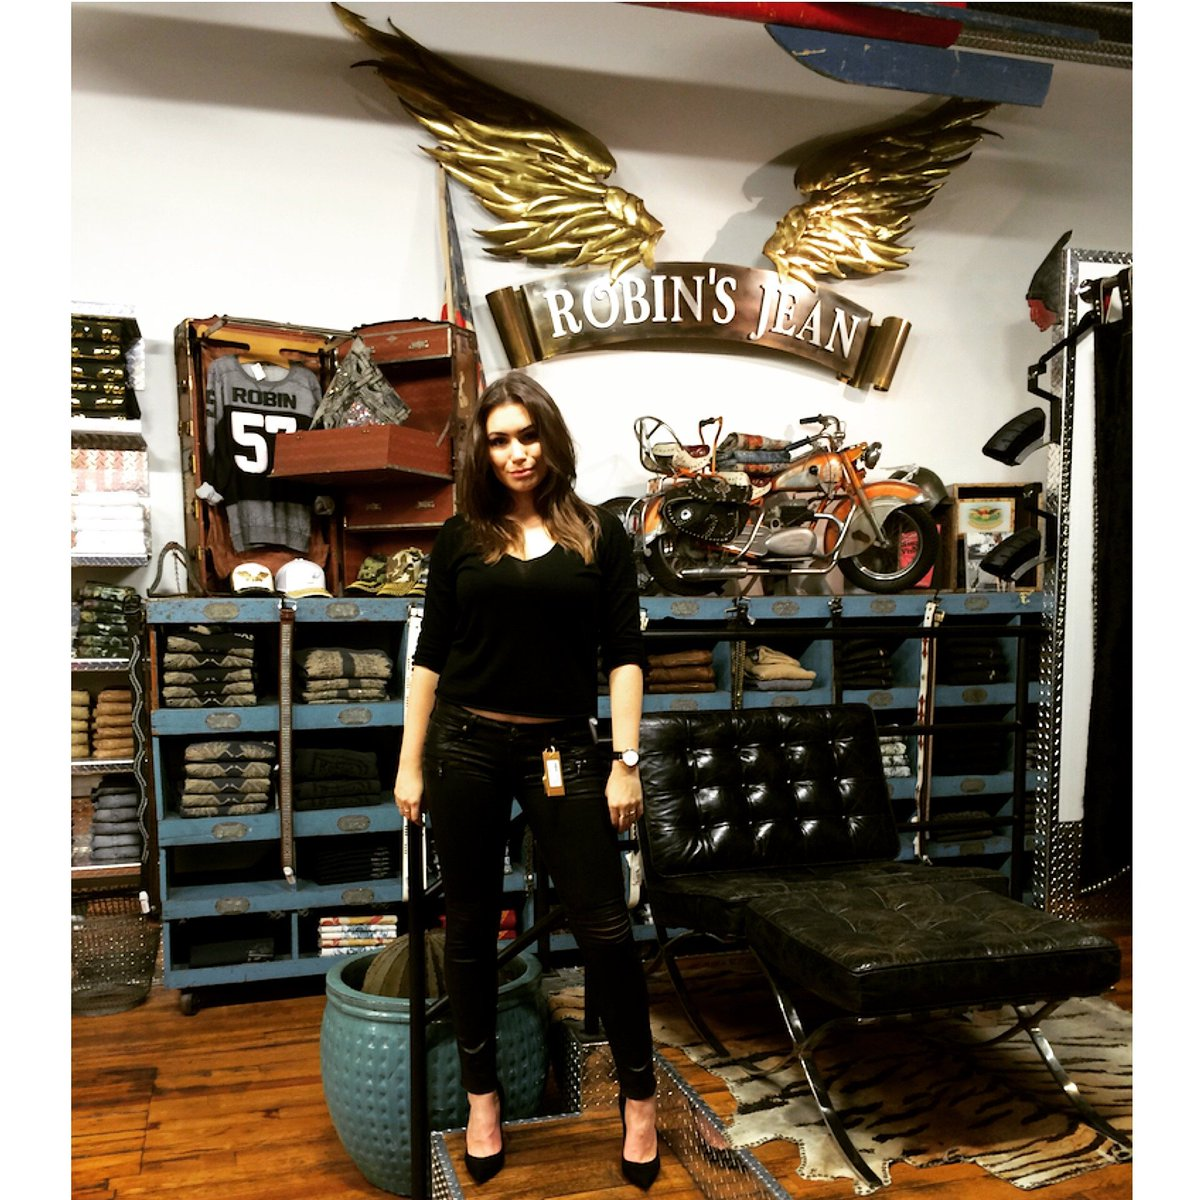 Model, singer and #fashionblogger @SophieTSimmons, daughter of @genesimmons stopped by #RobinsJean to shop new looks https://t.co/3iF2oBeOOv